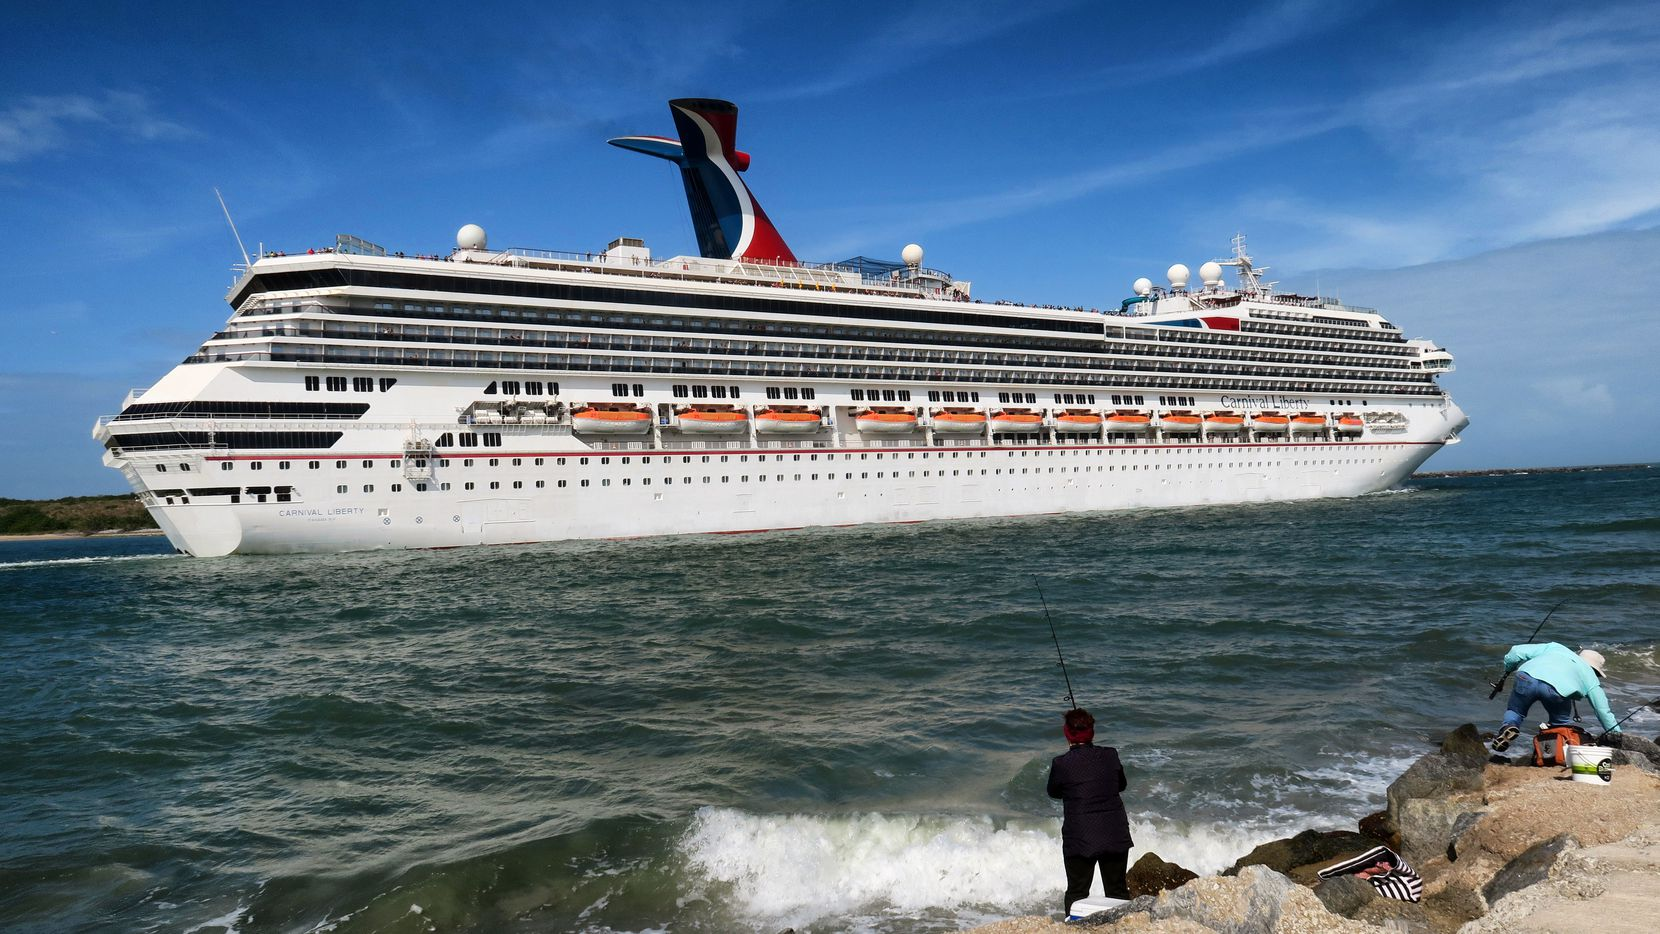 The Carnival Liberty leaves Port Canaveral, Fla., Monday, March 9, 2020.